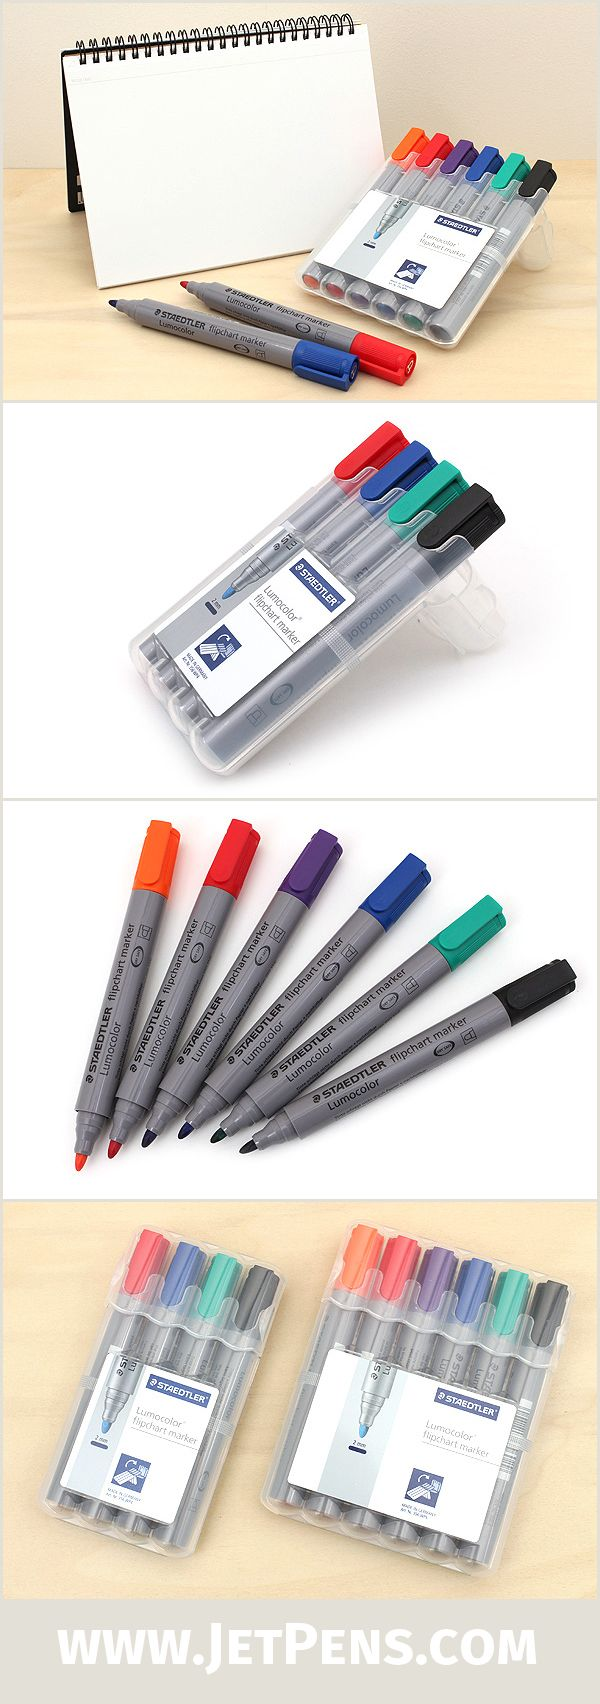 Designed for use with flipcharts and paper signs, the Staedtler Lumocolor Markers contain quick-drying, water-based ink that is great for left-handed writers.